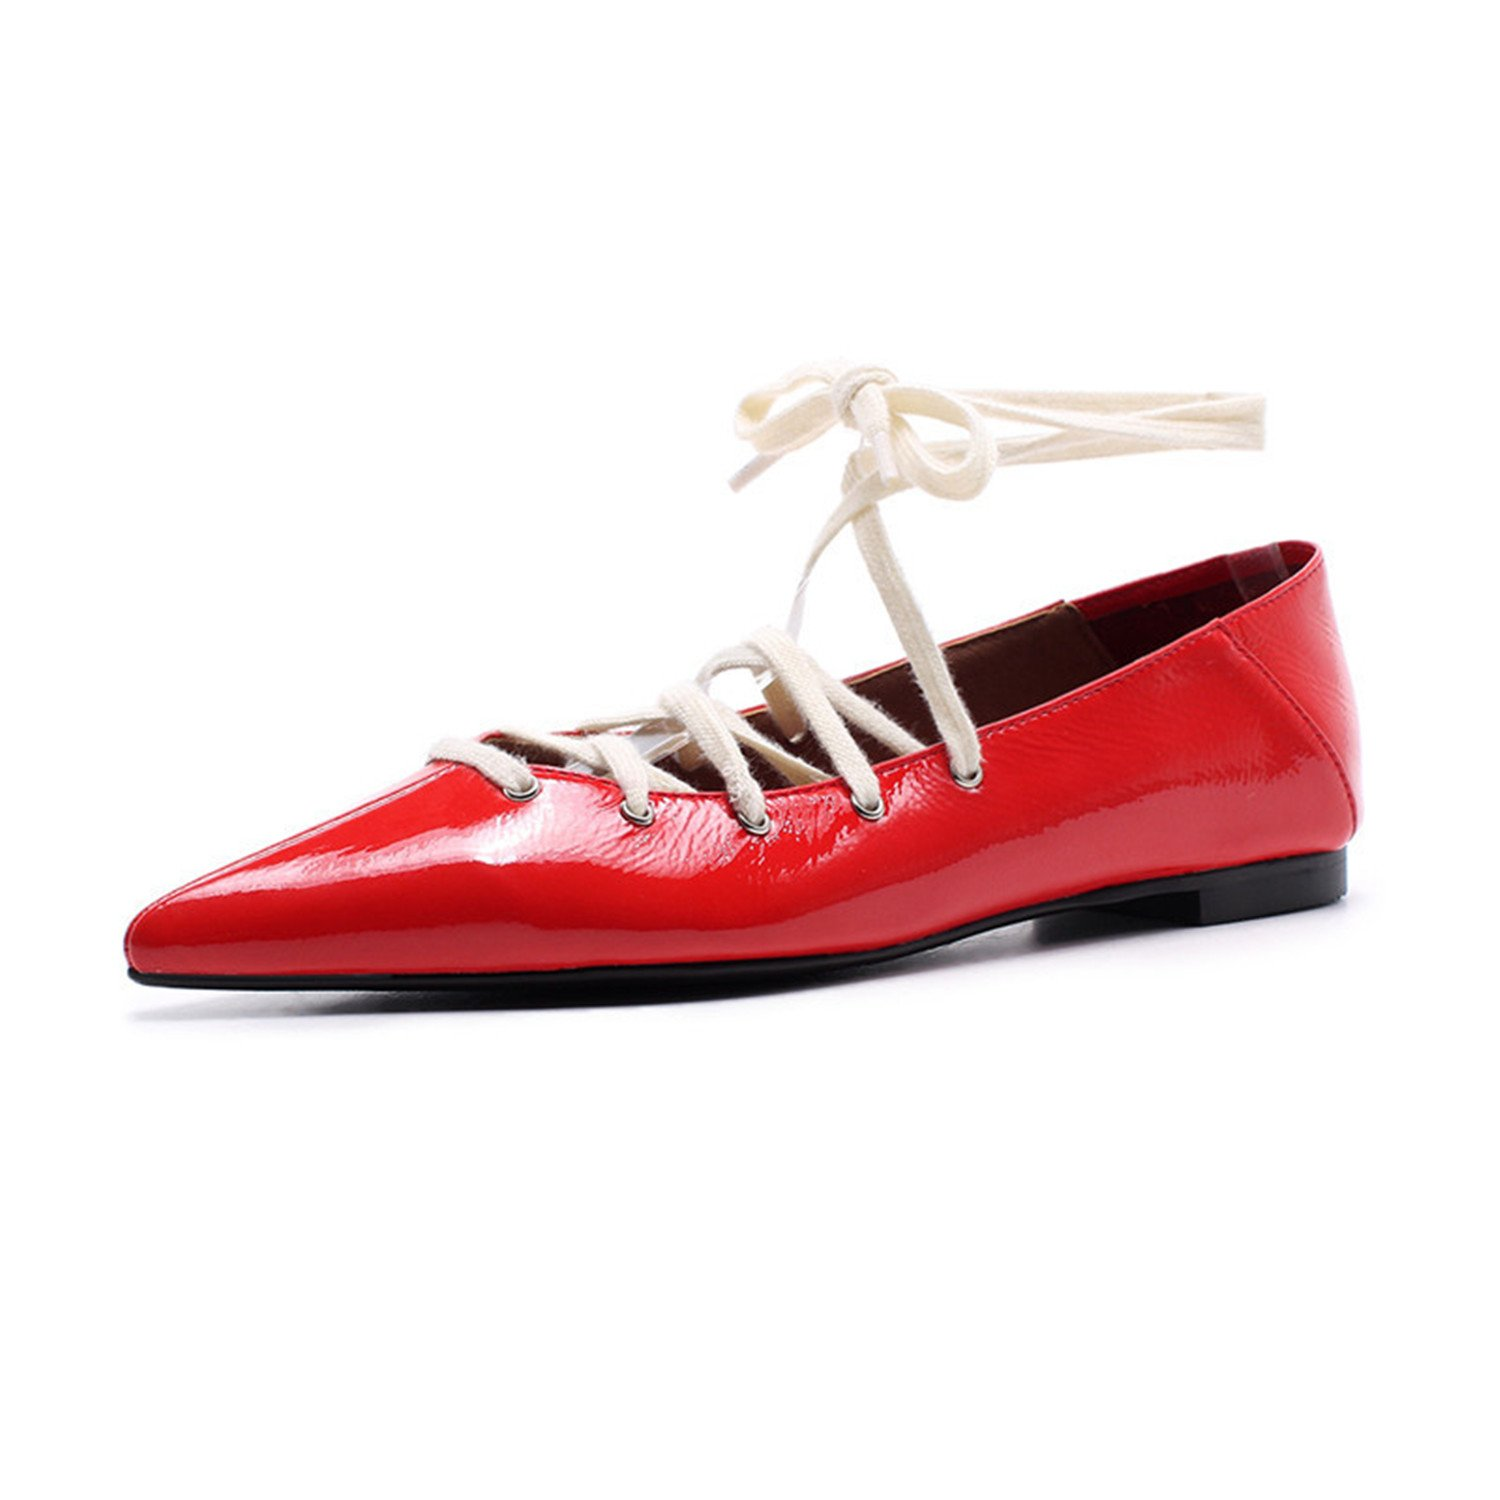 Dormery 2018 Sexy Red Flat Heels Pointed Toe Wedding Shoes Lace Up Patent Leather Mules Shoes Plus Size Women Casual Loafers C792